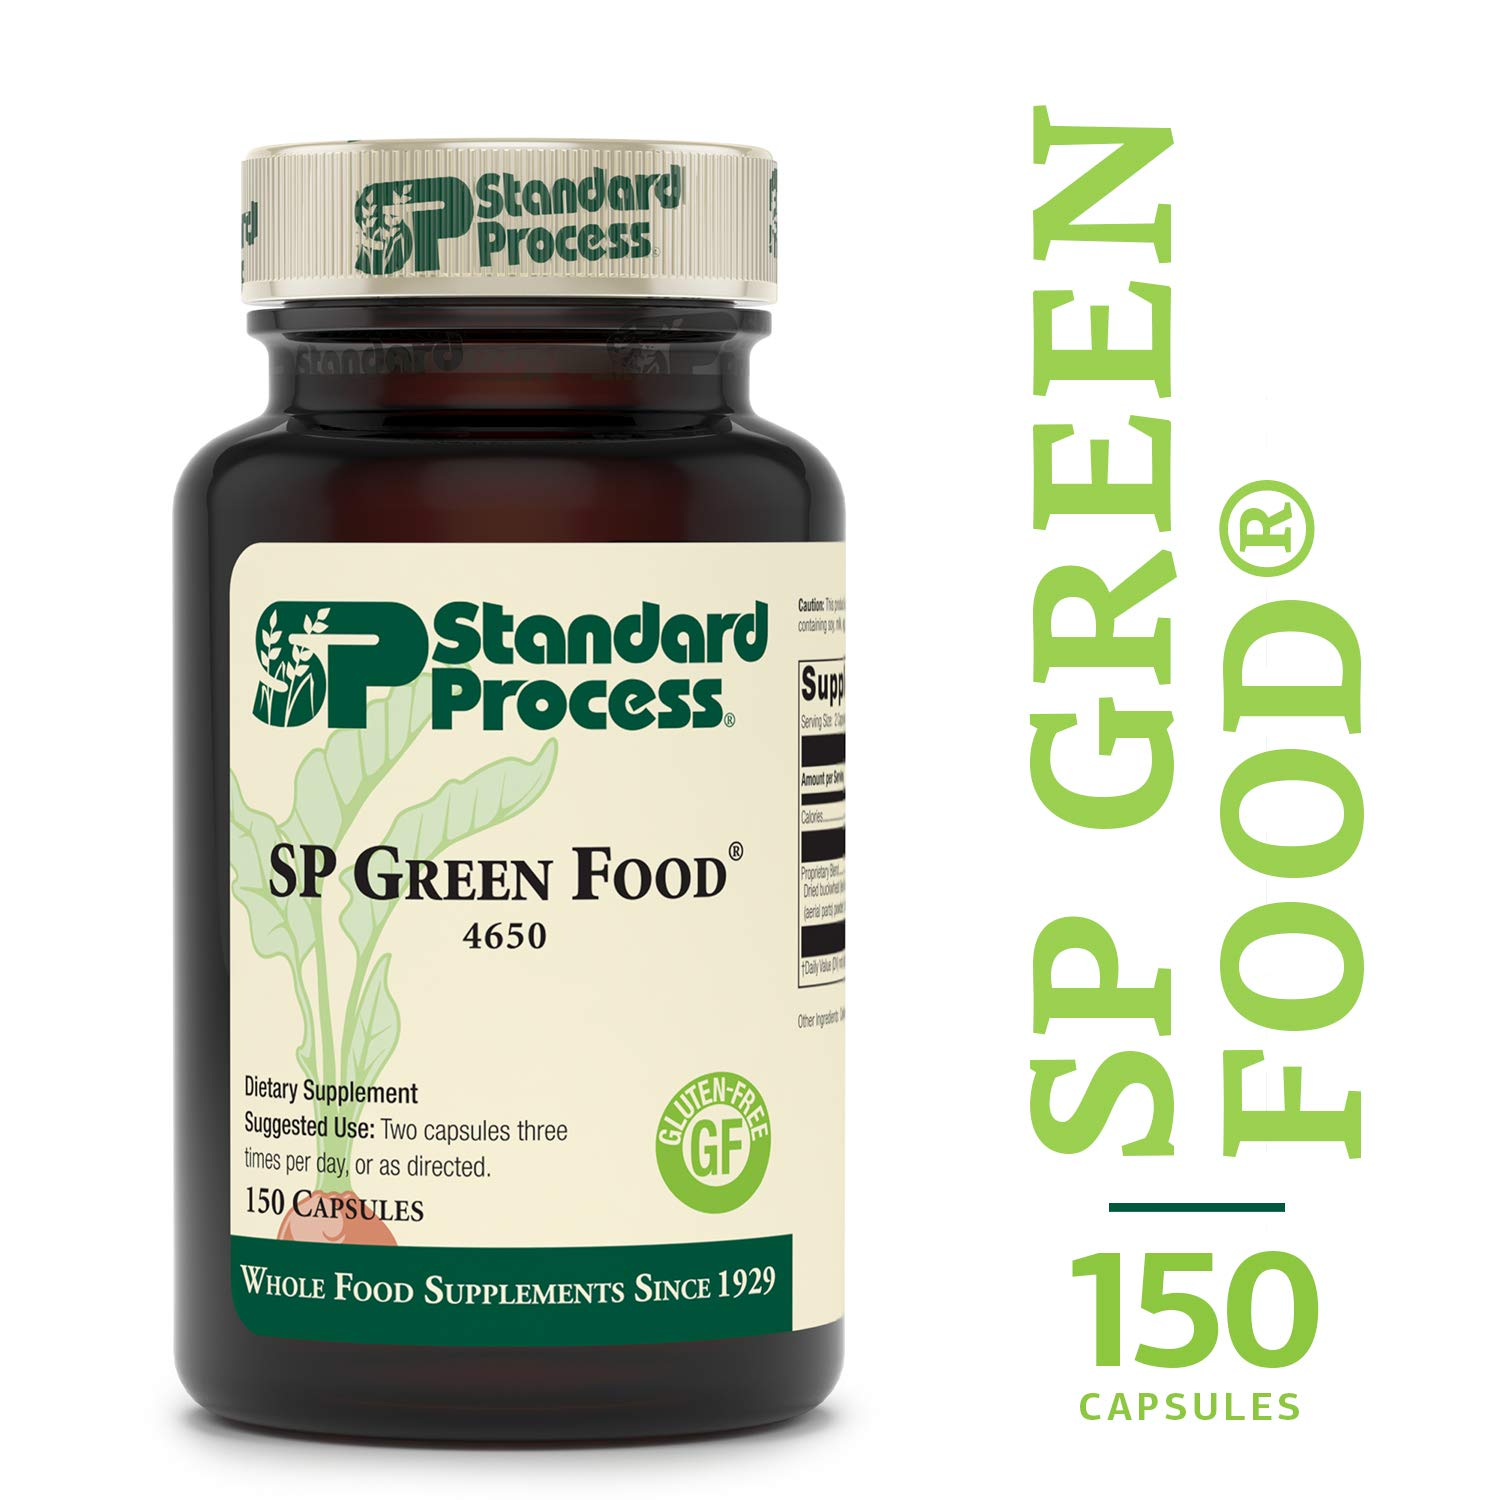 Standard Process – SP Green Food – Supports Healthy Liver Function, Antioxidant Activity, Cholesterol Metabolism, Gluten Free and Vegetarian – 150 Capsules